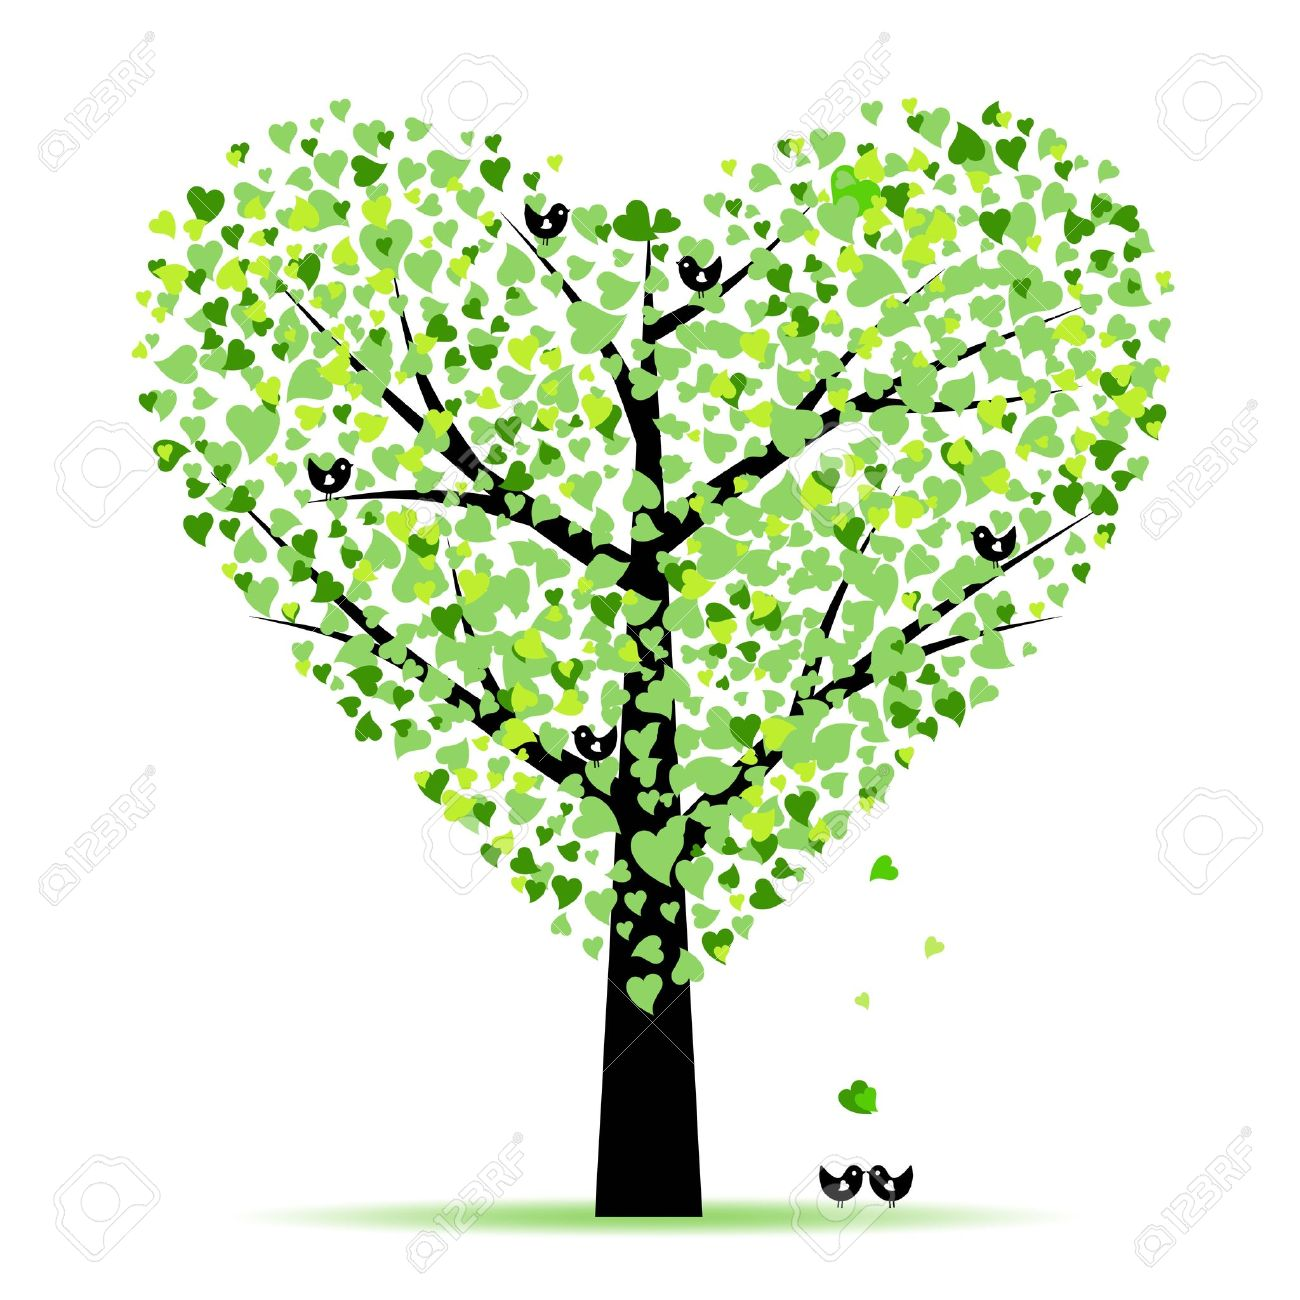 tree with a heart clipart #18